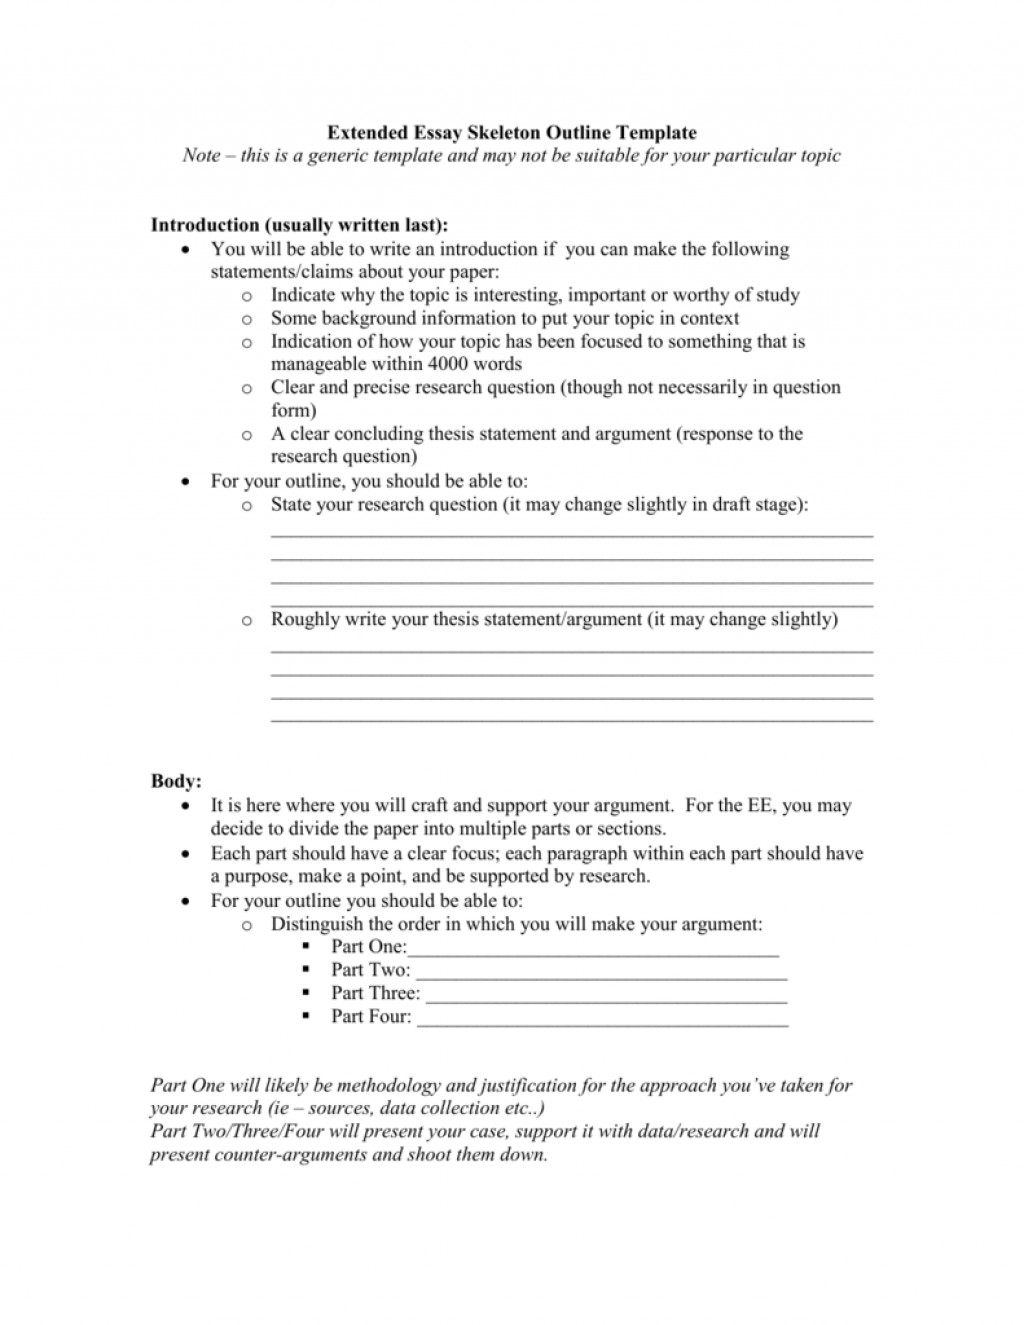 001 Essay Example 007500038 1 Extended Stupendous Outline Layout Definition Examples Success Large